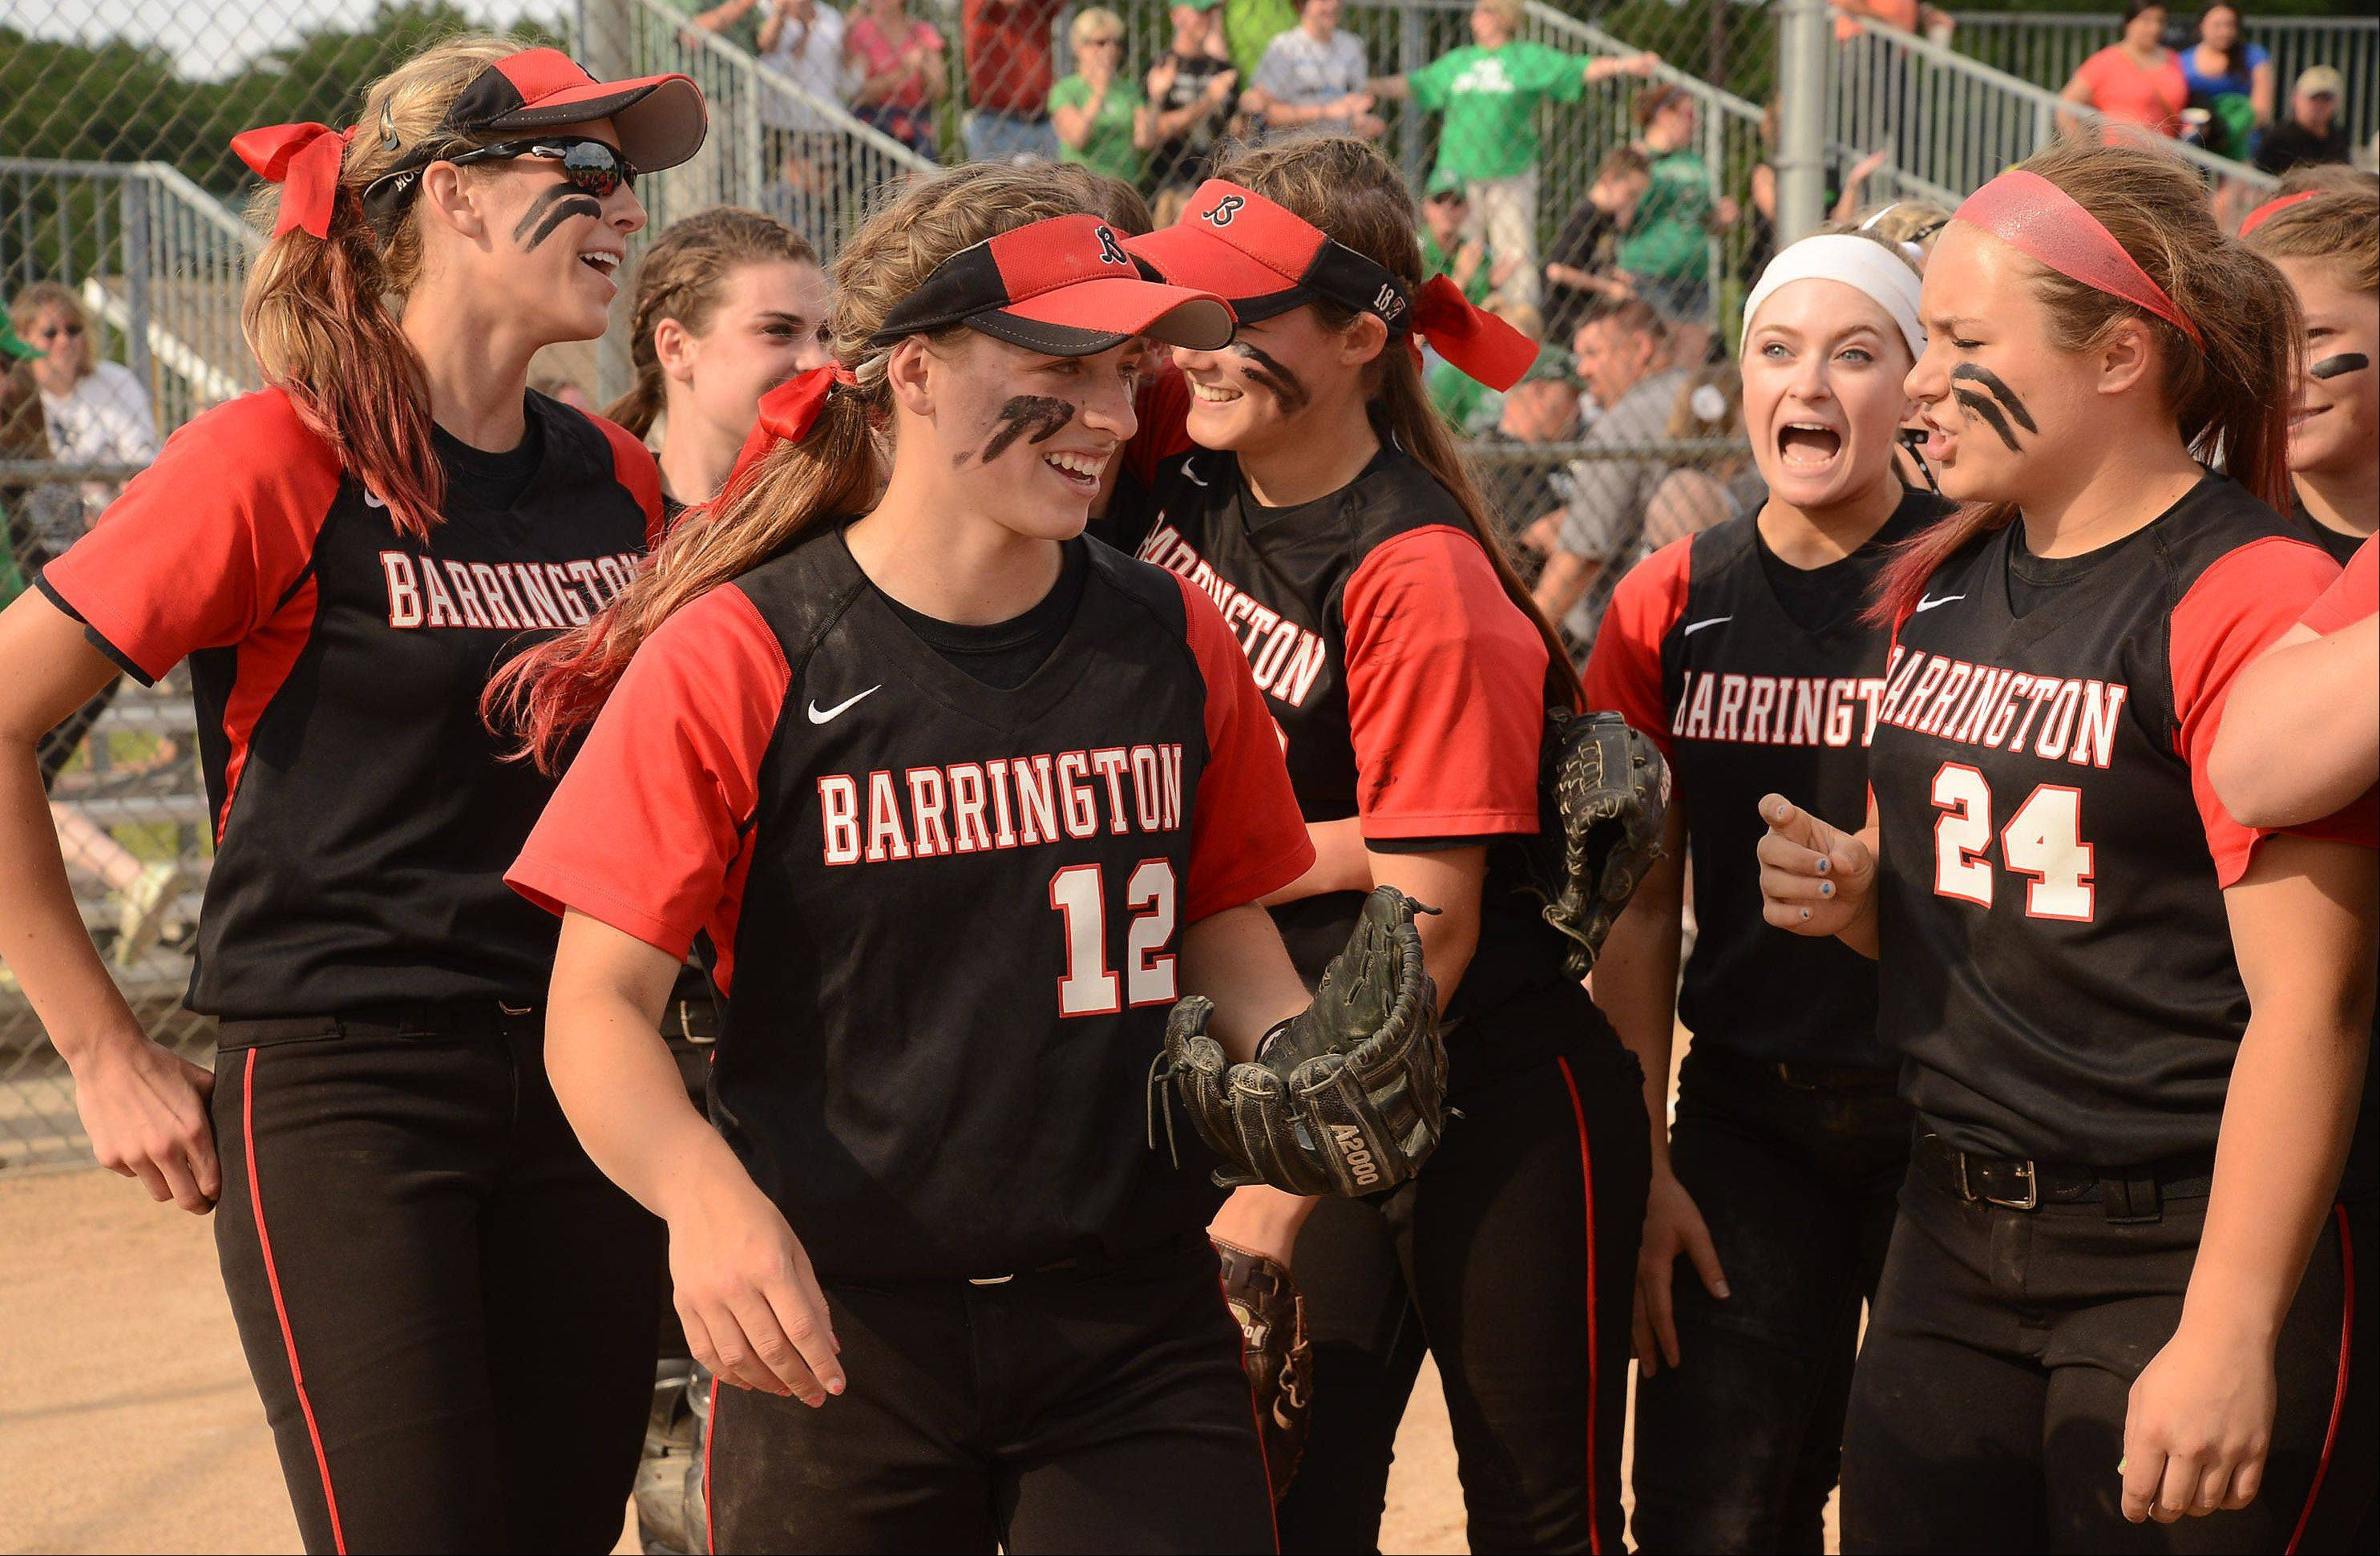 Barrington celebrates its Class 4A softball third-place finish after defeating York 5-1.